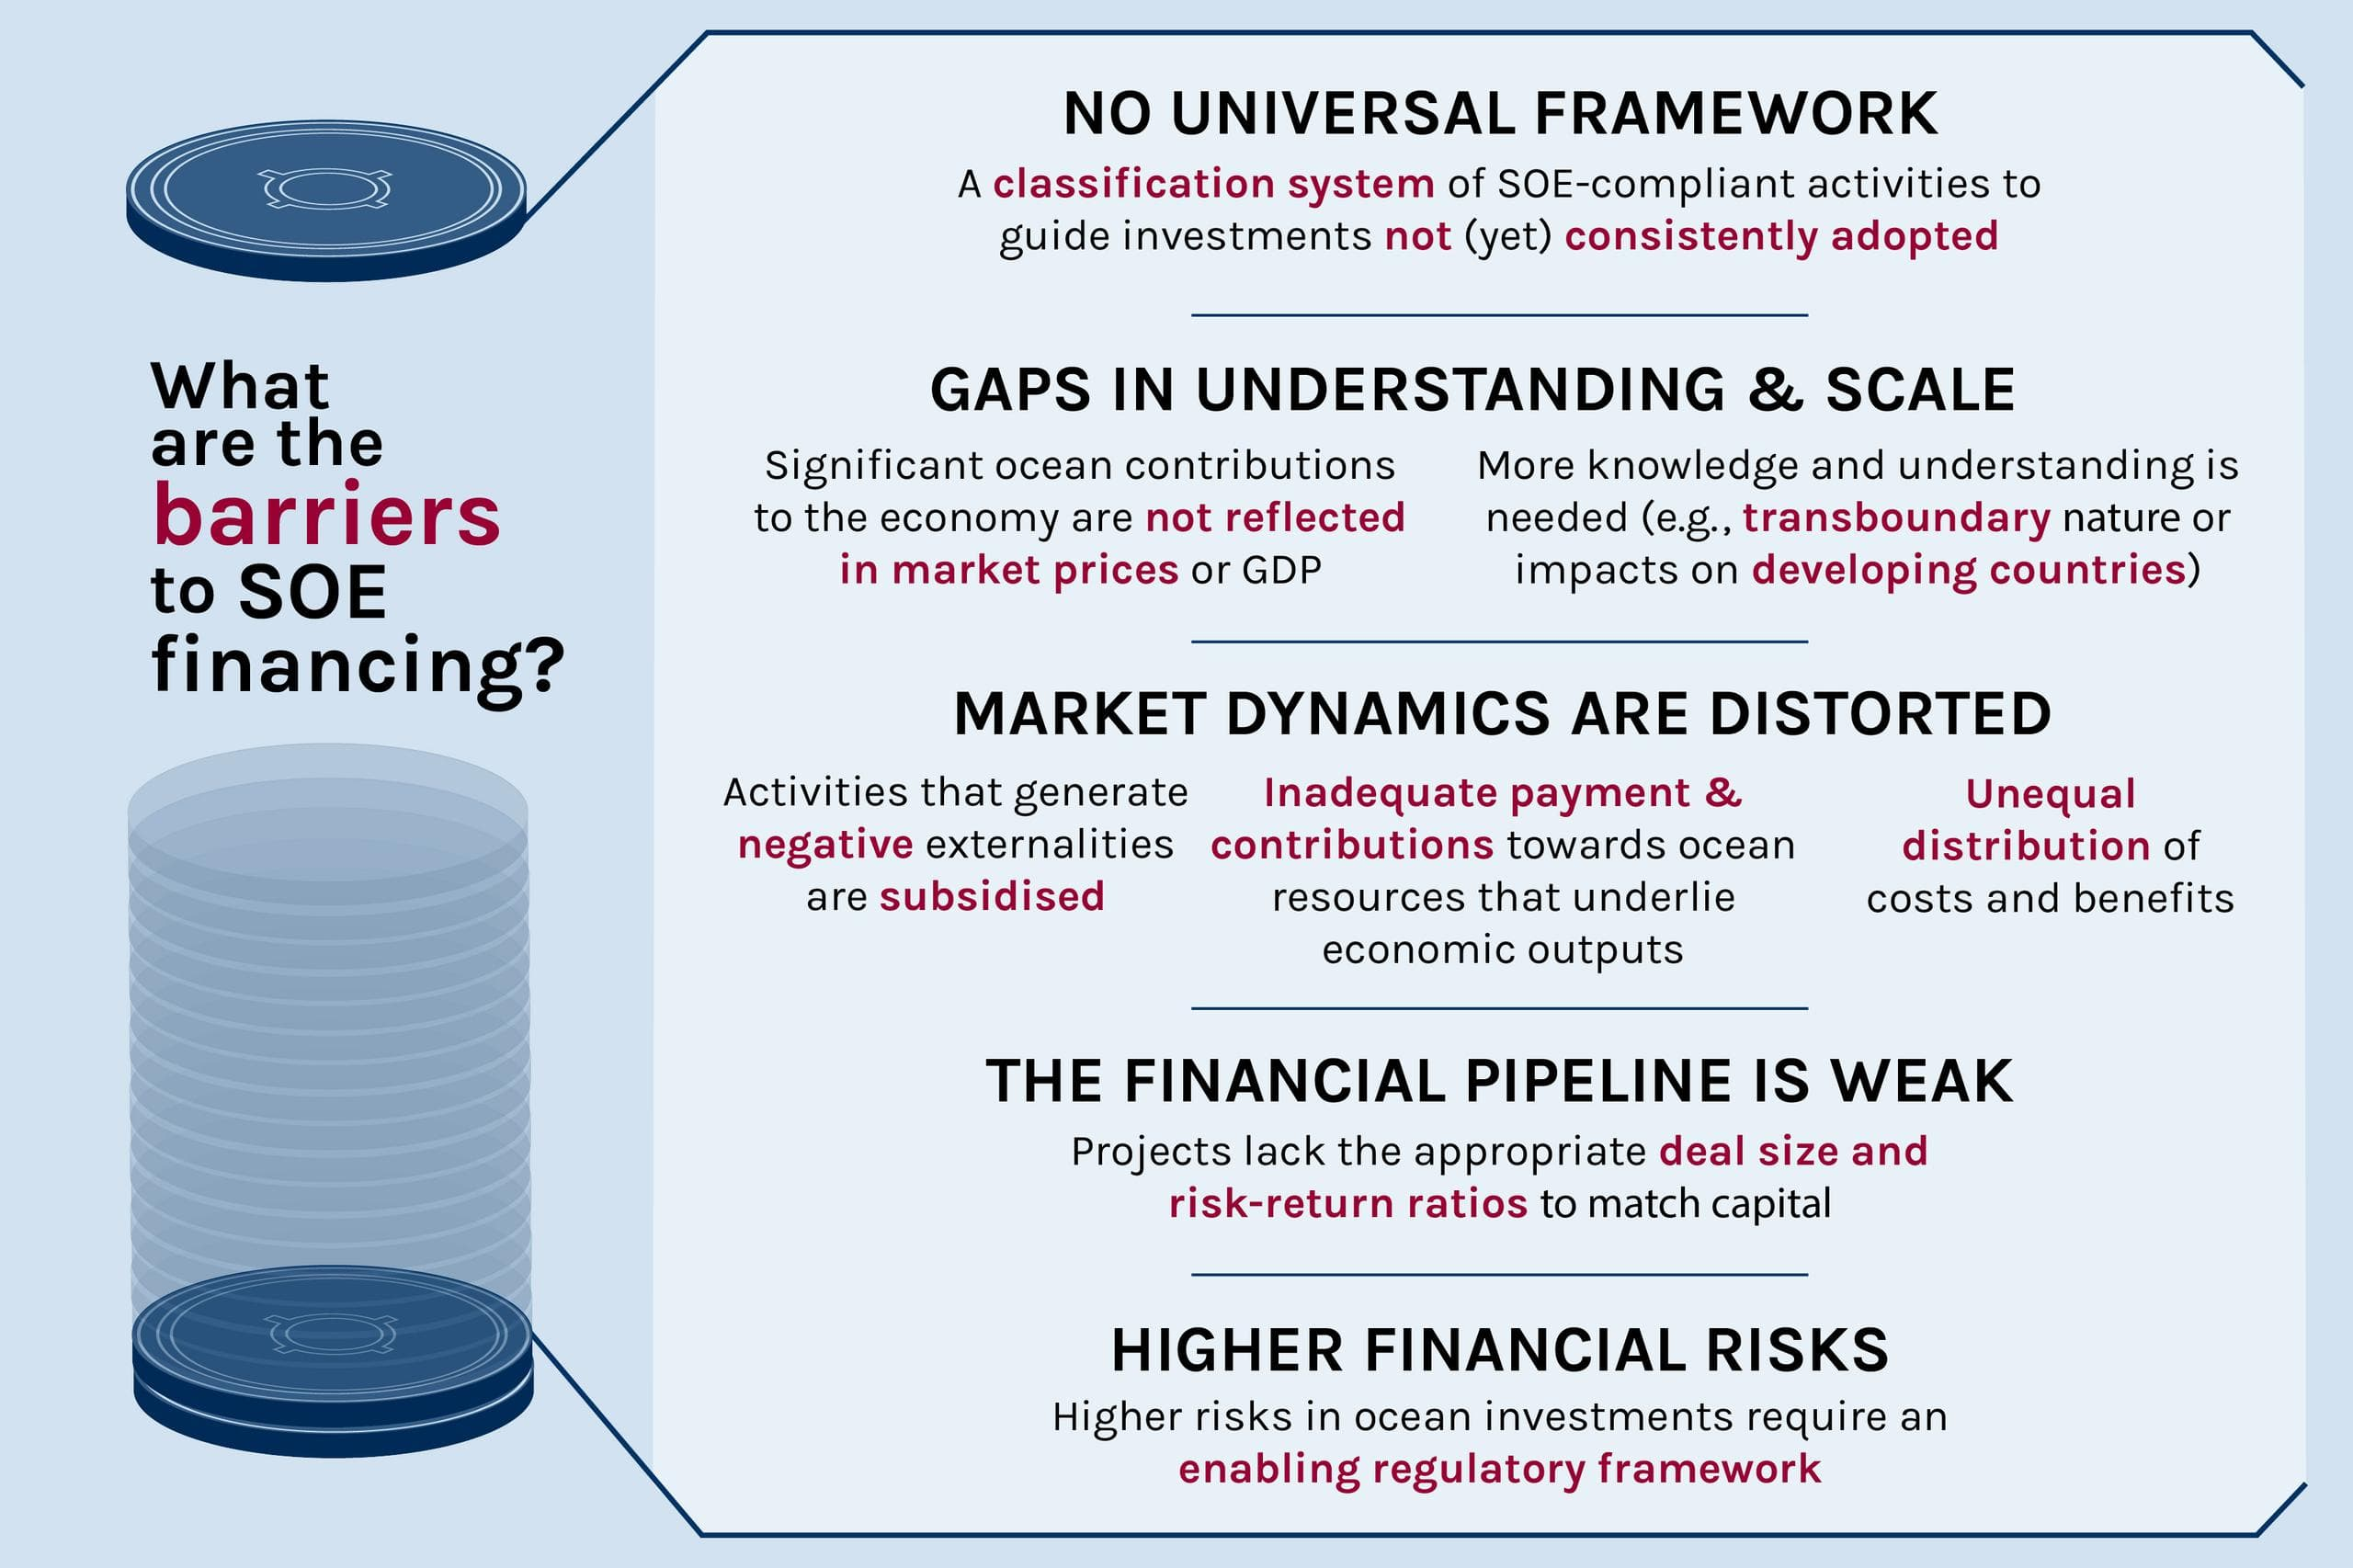 Figure: Barriers to SOE financing include a lack of universal framework, gaps in understanding and scale, distortion of market dynamics, a weak financial pipeline, and high financial risks.